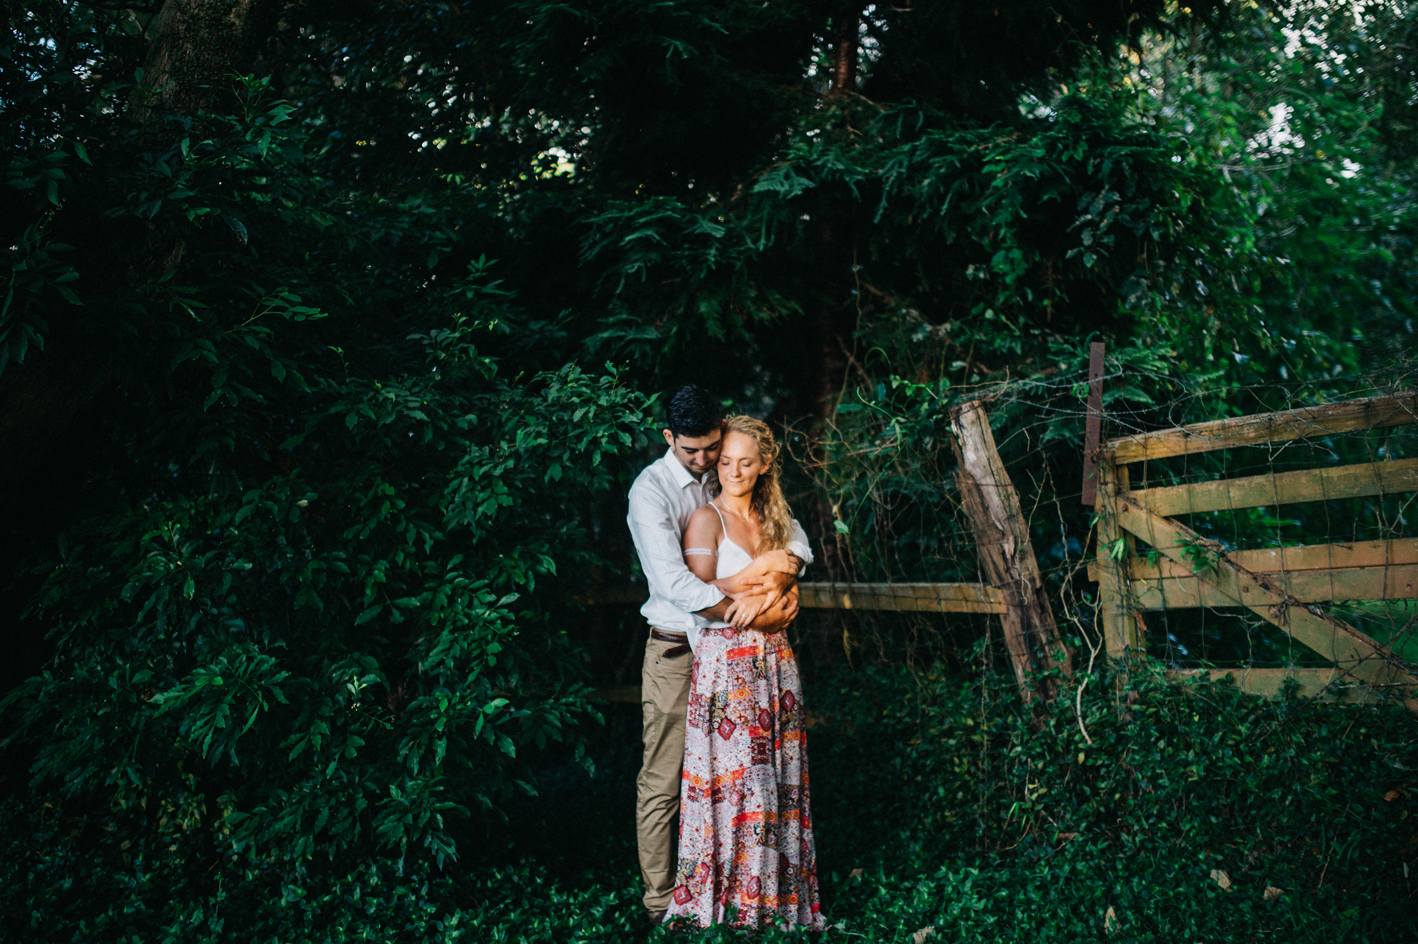 010-dan-emily_engaged_sophie-baker-photography